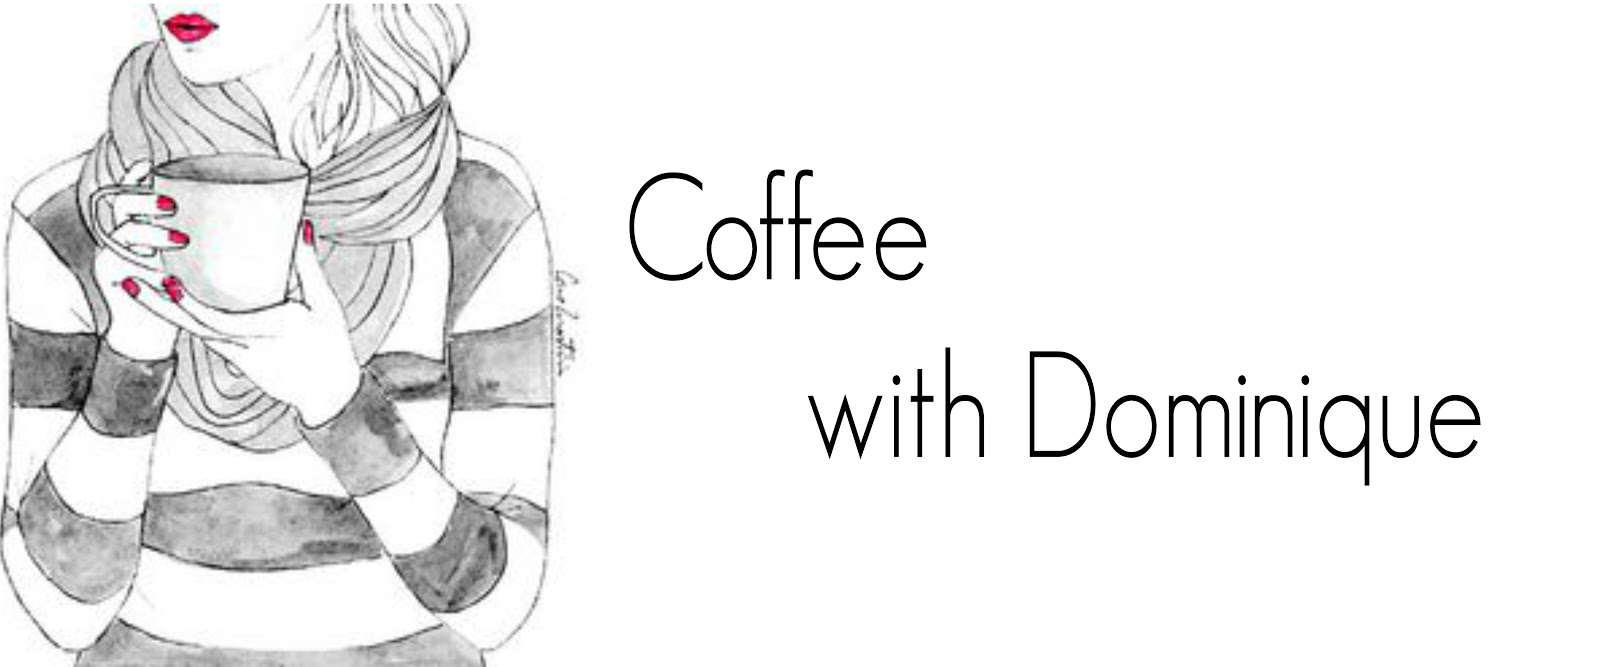 Coffee with Dominique